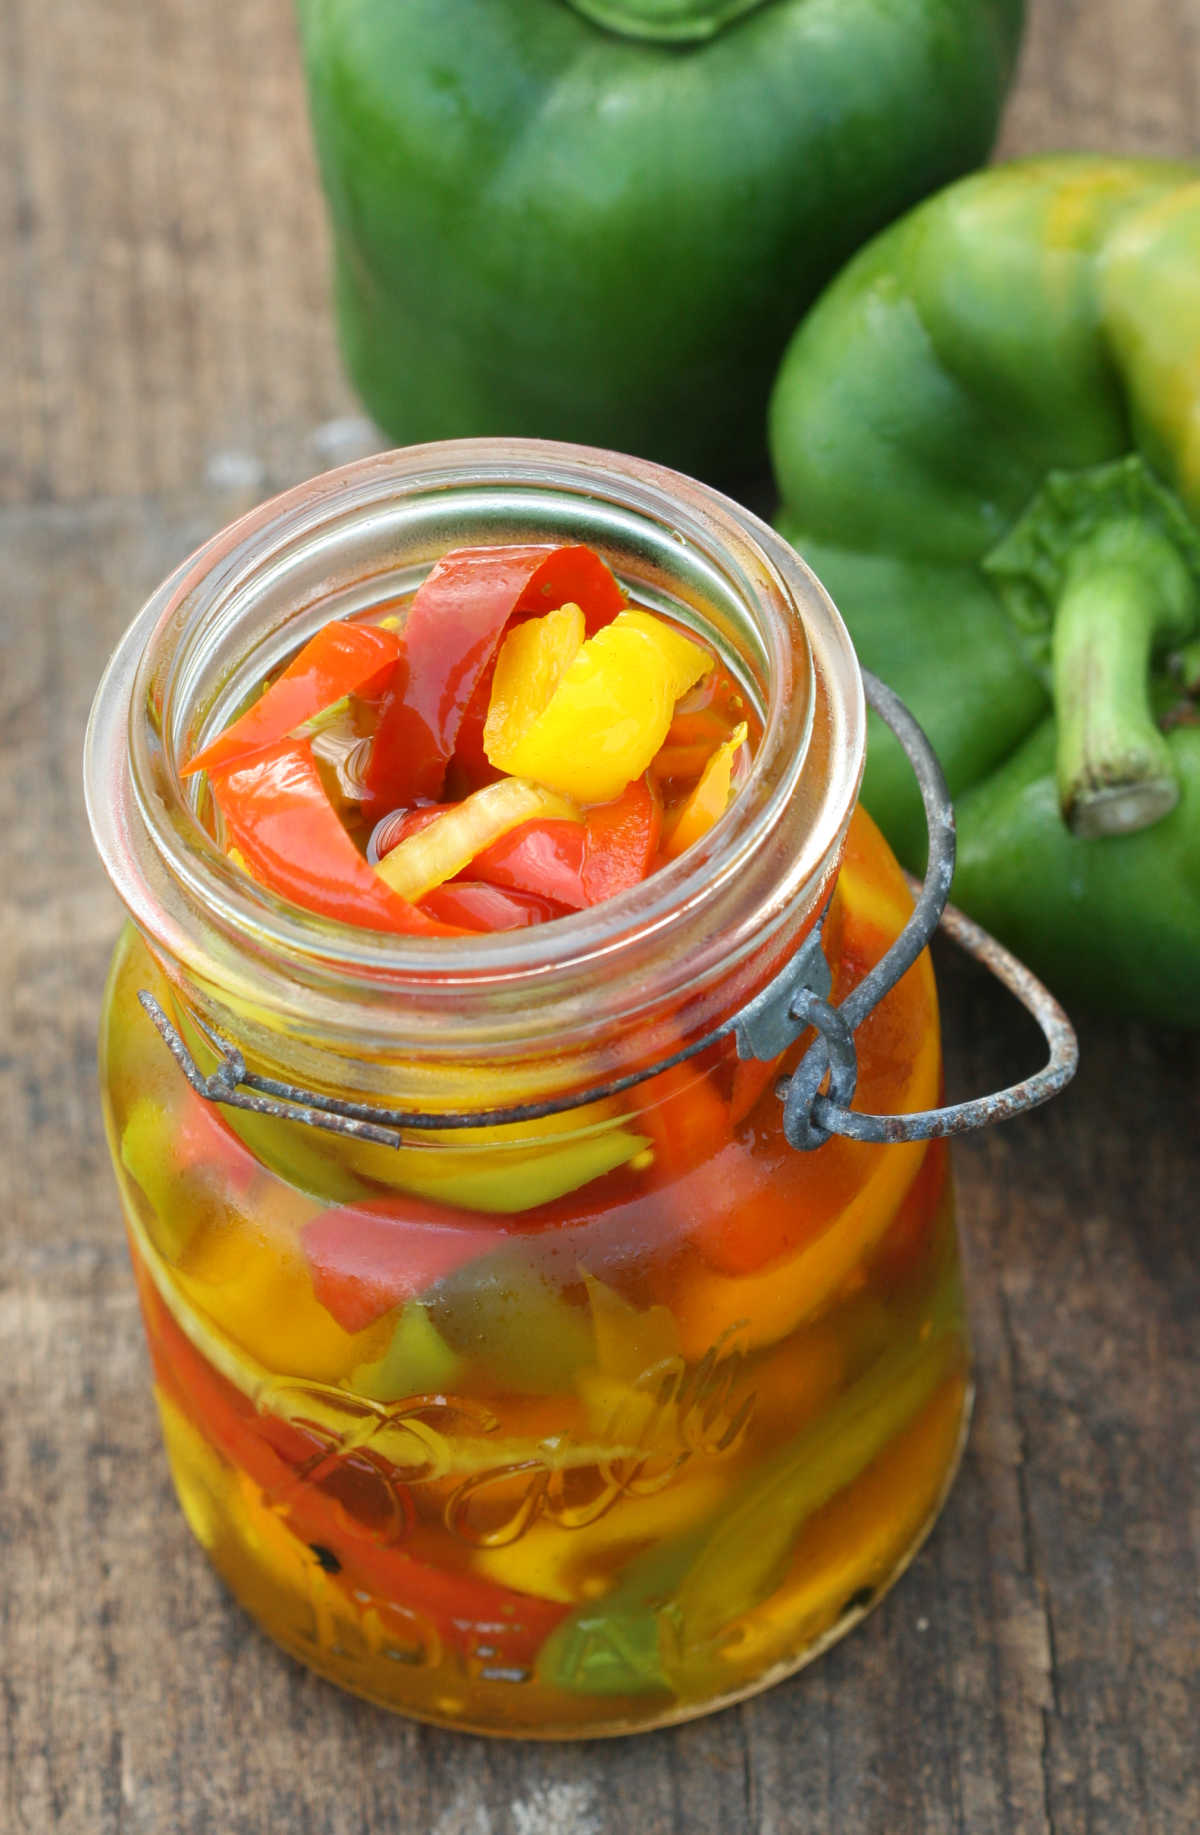 pickled sweet peppers in vintage Mason jars outside on reclaimed wood boards.